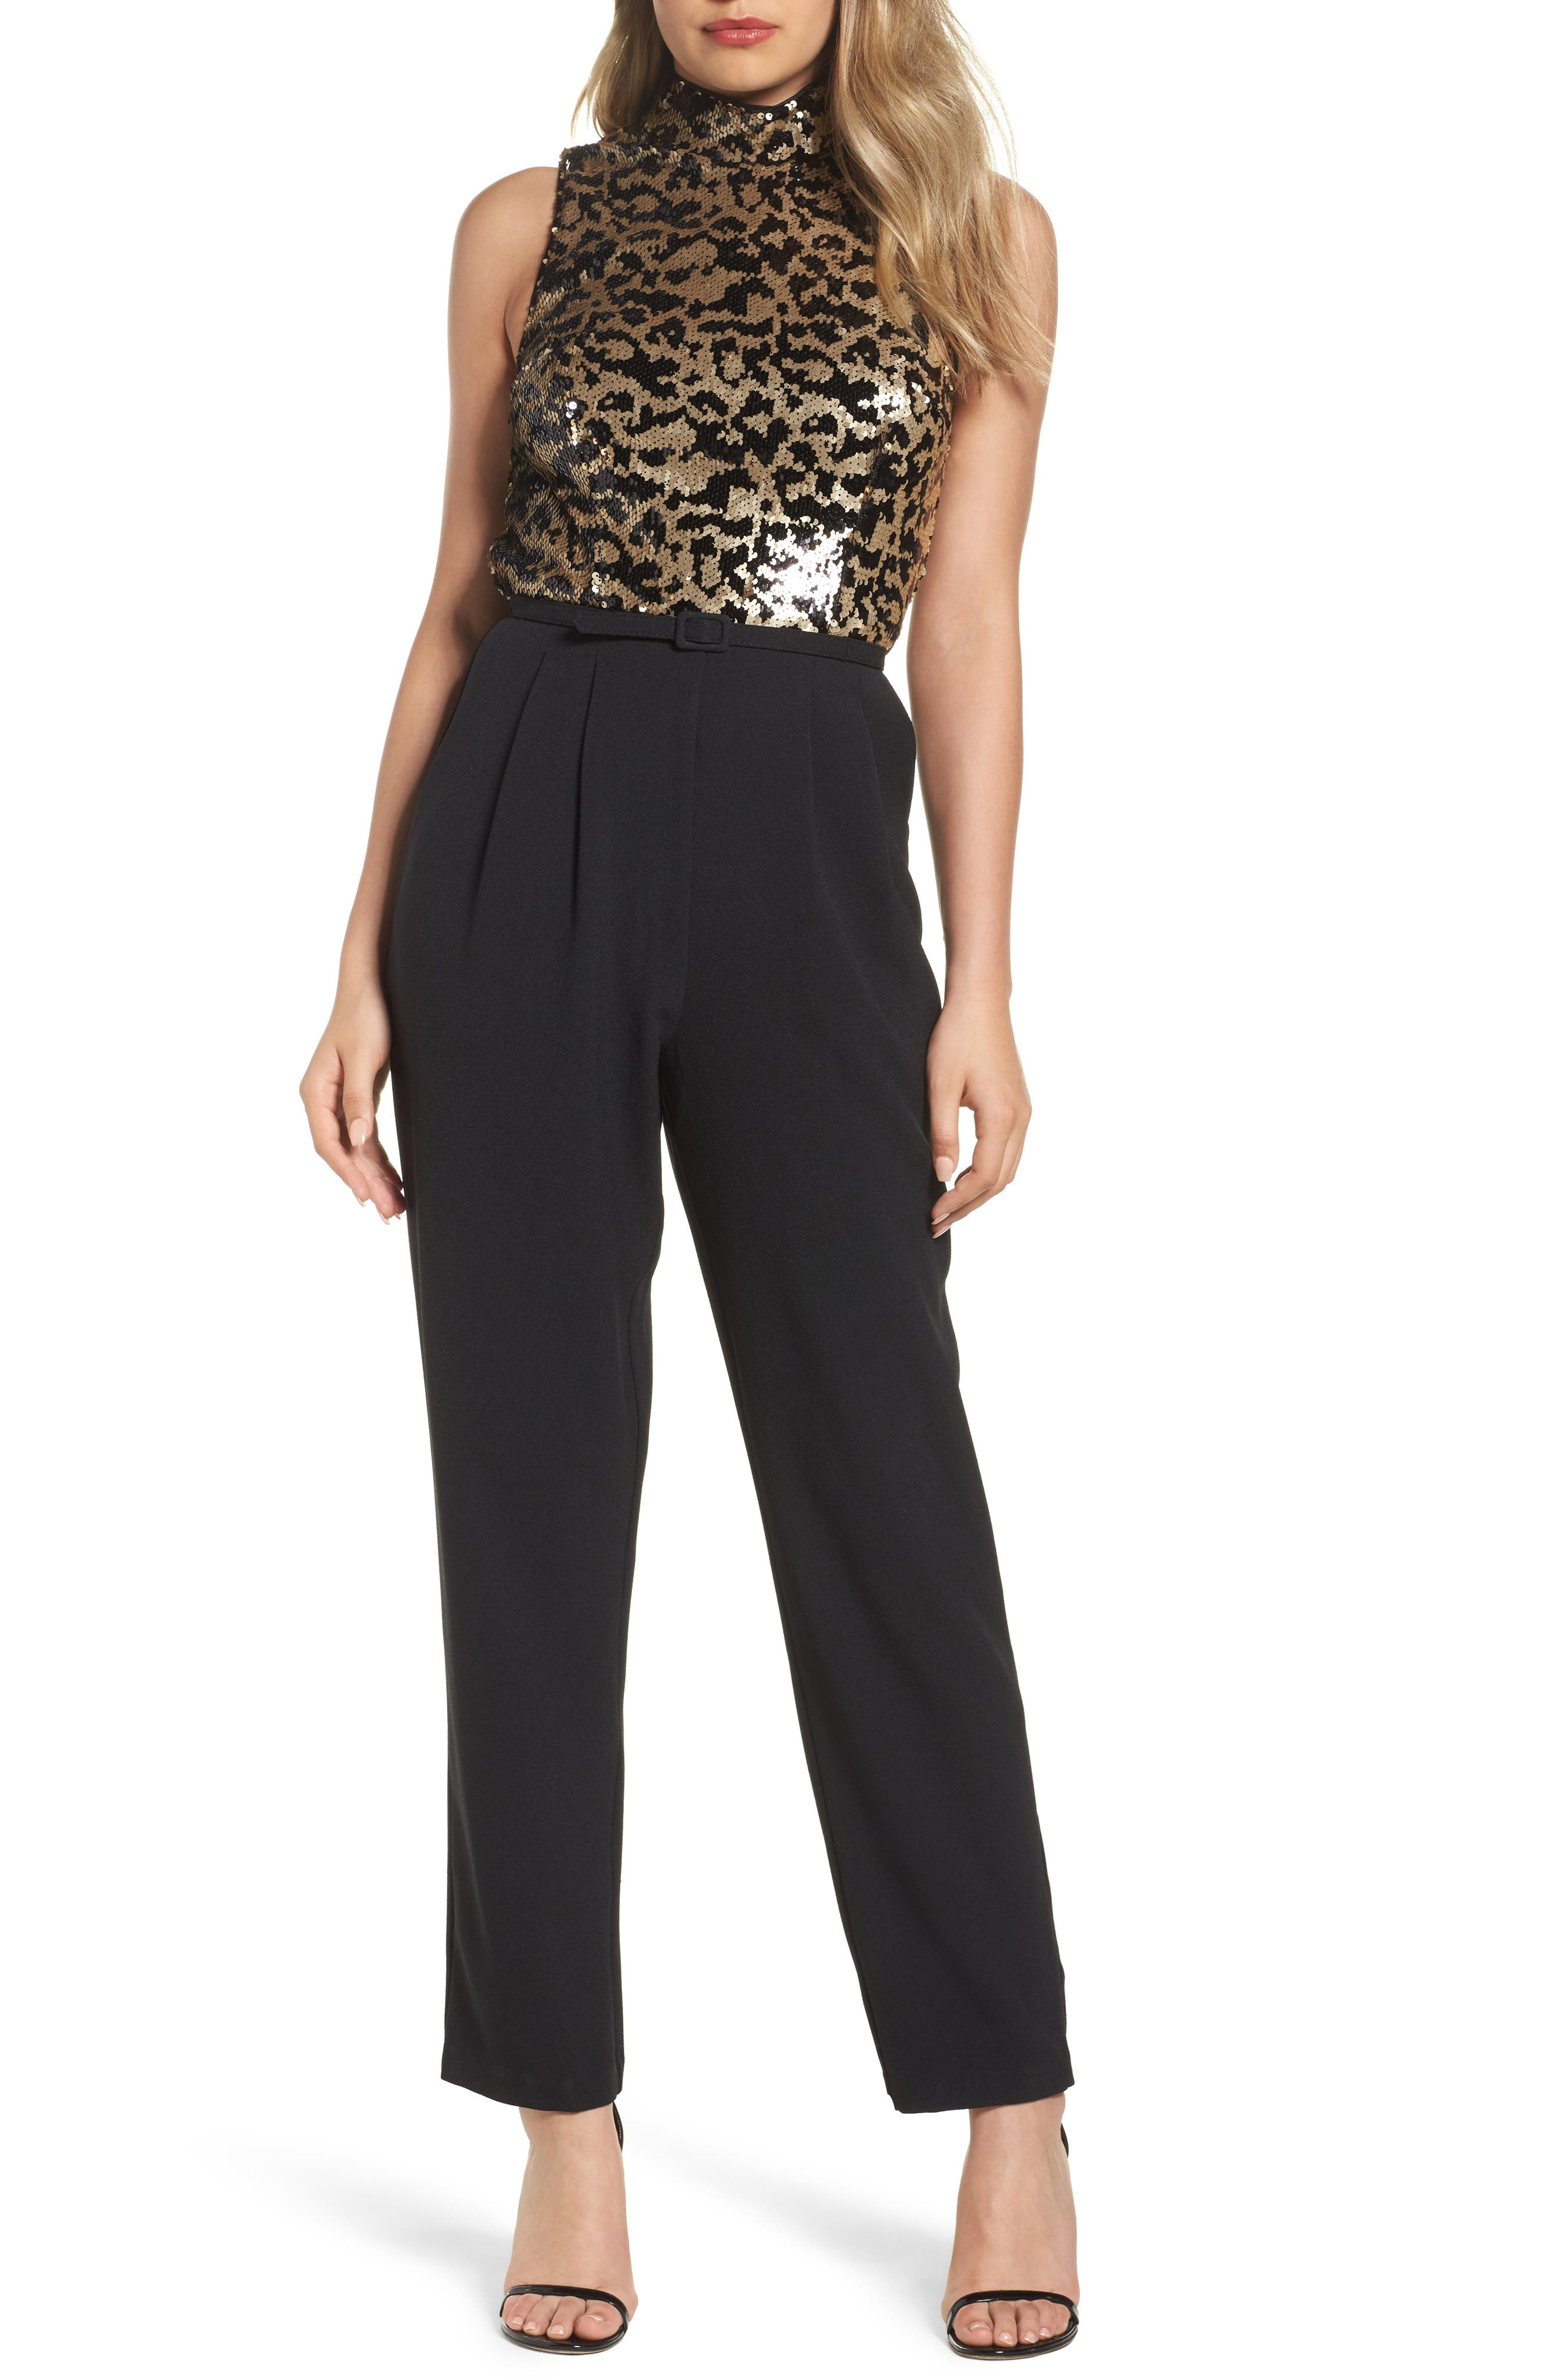 Vince Camuto Sequin Leopard Bodice Belted Jumpsuit